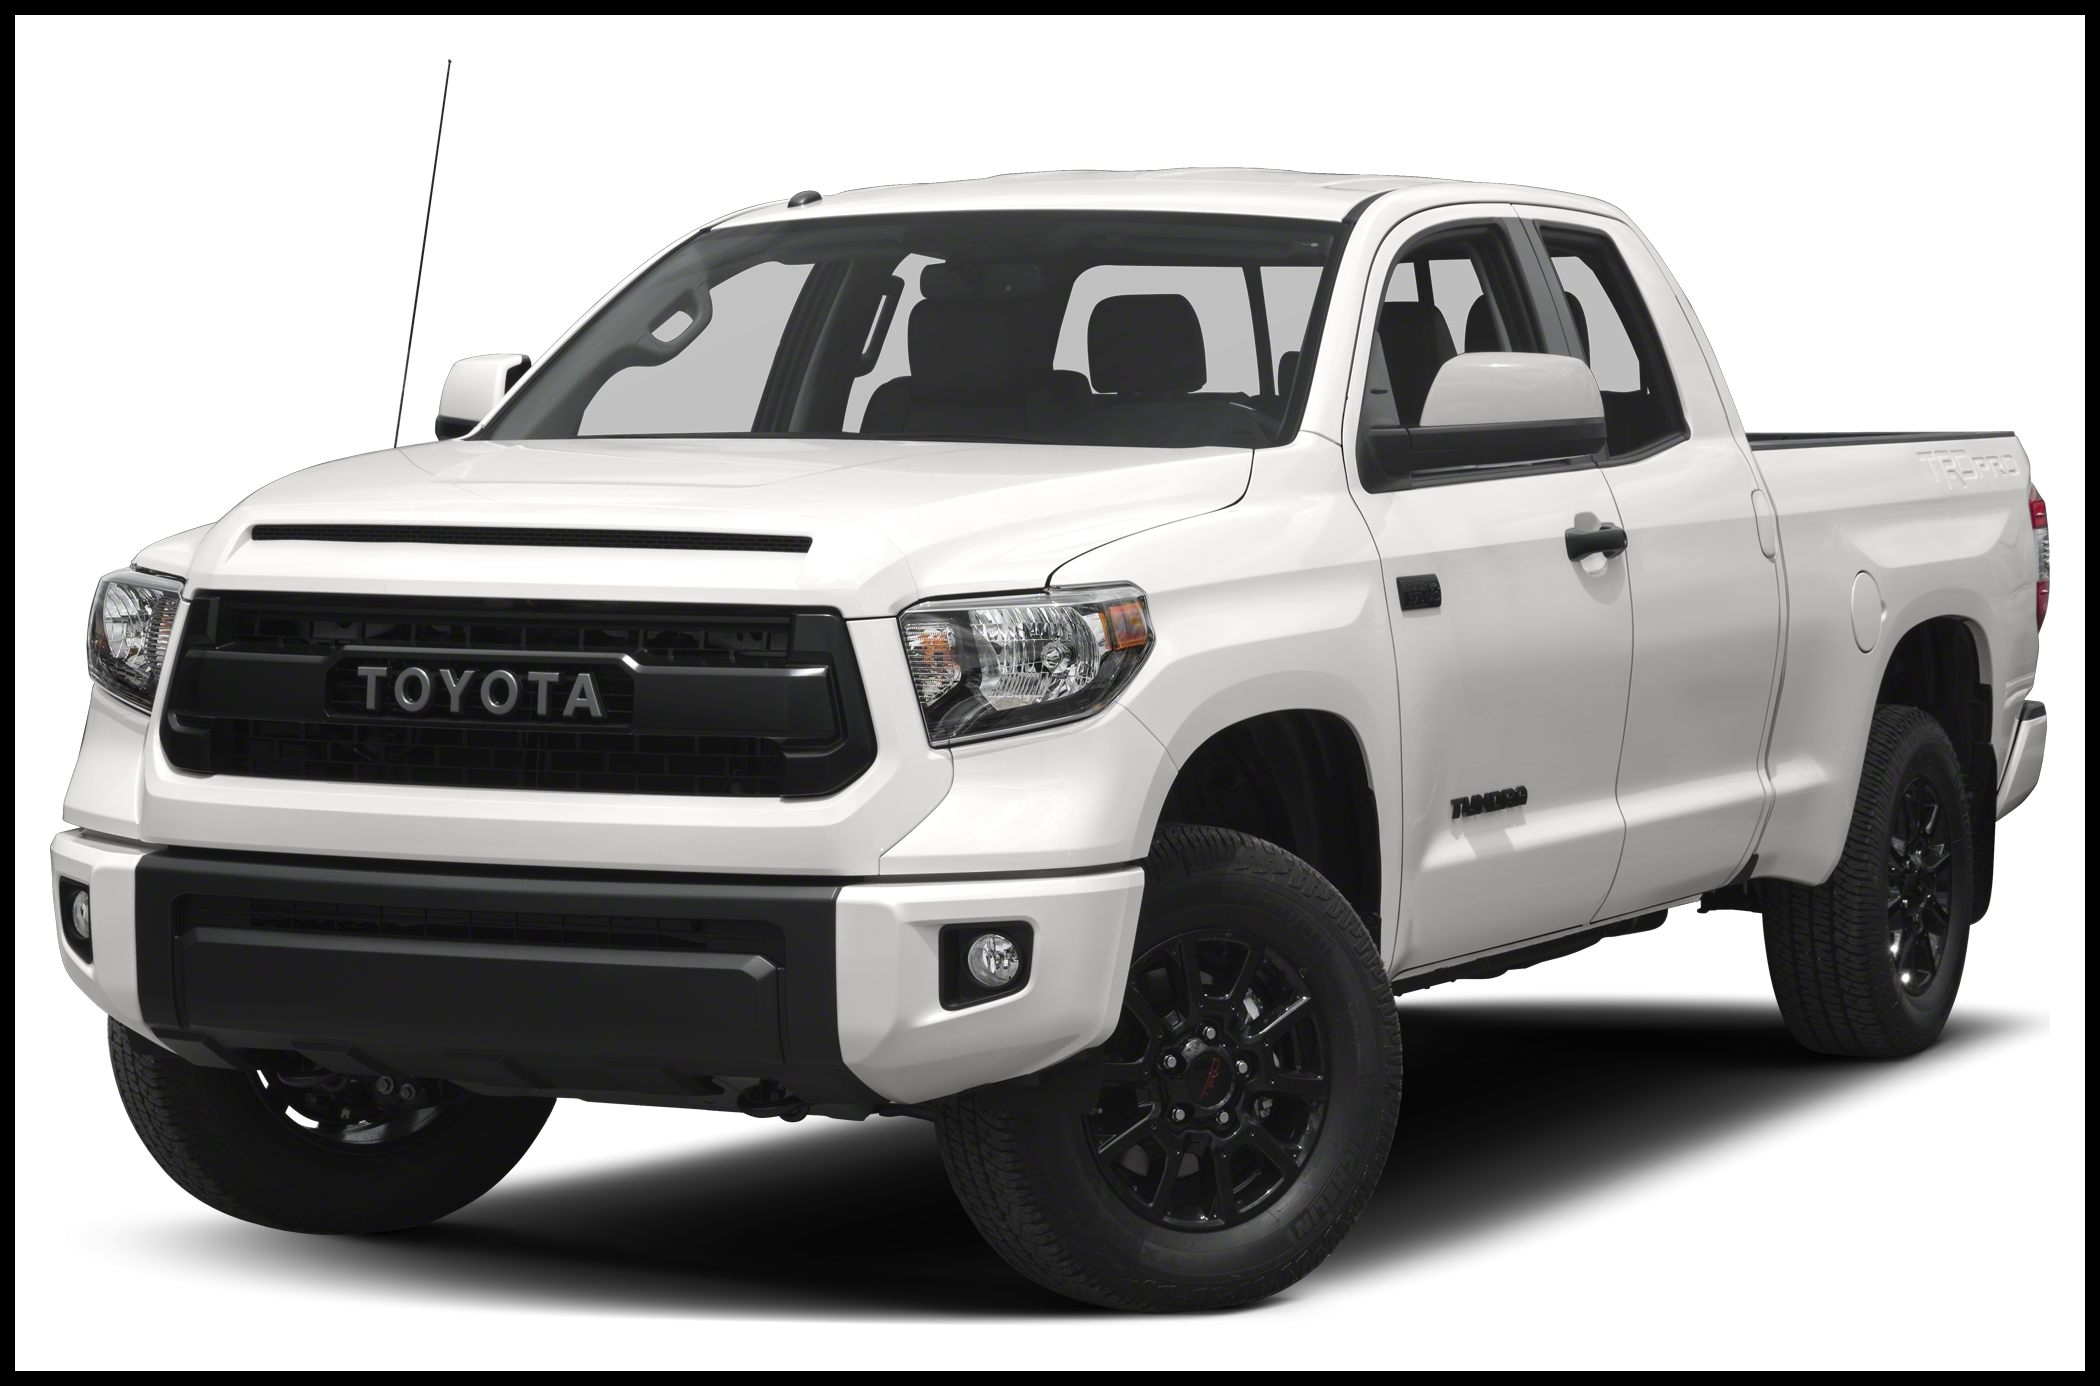 2017 Toyota Tundra TRD Pro 5 7L V8 4x4 Double Cab 6 6 ft box 145 7 in WB for Sale